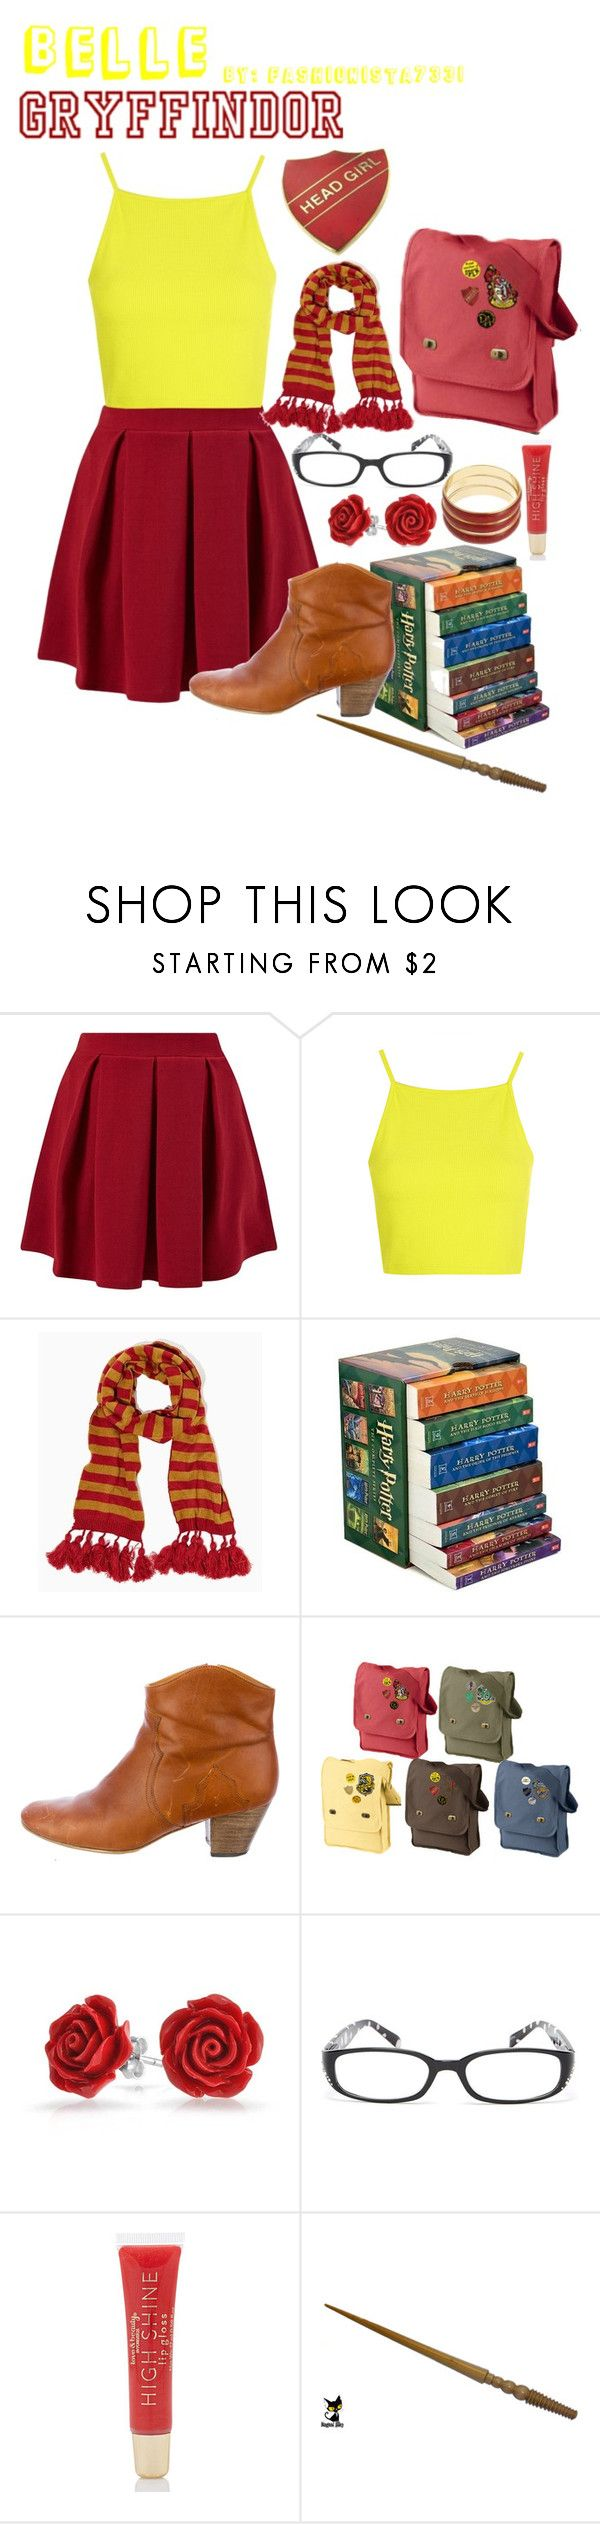 """""""Belle Gryffindor"""" by fashionista7331 ❤ liked on Polyvore featuring Cameo Rose, Topshop, INC International Concepts, Isabel Marant, Bling Jewelry, Madison Parker, Forever 21 and Robert Rose"""